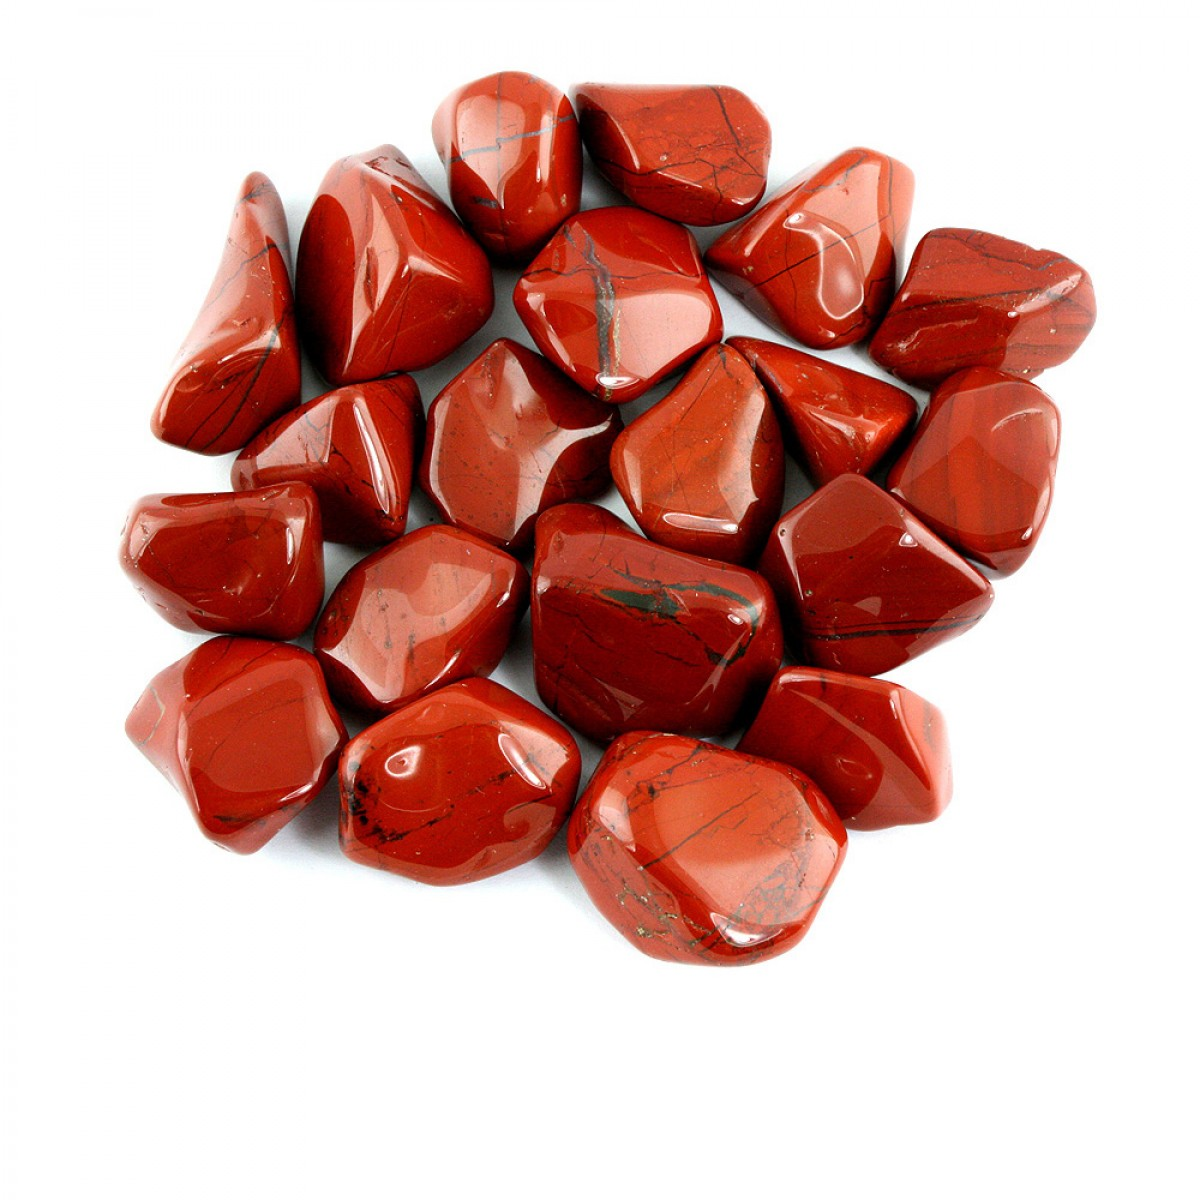 Red Jasper from South Africa